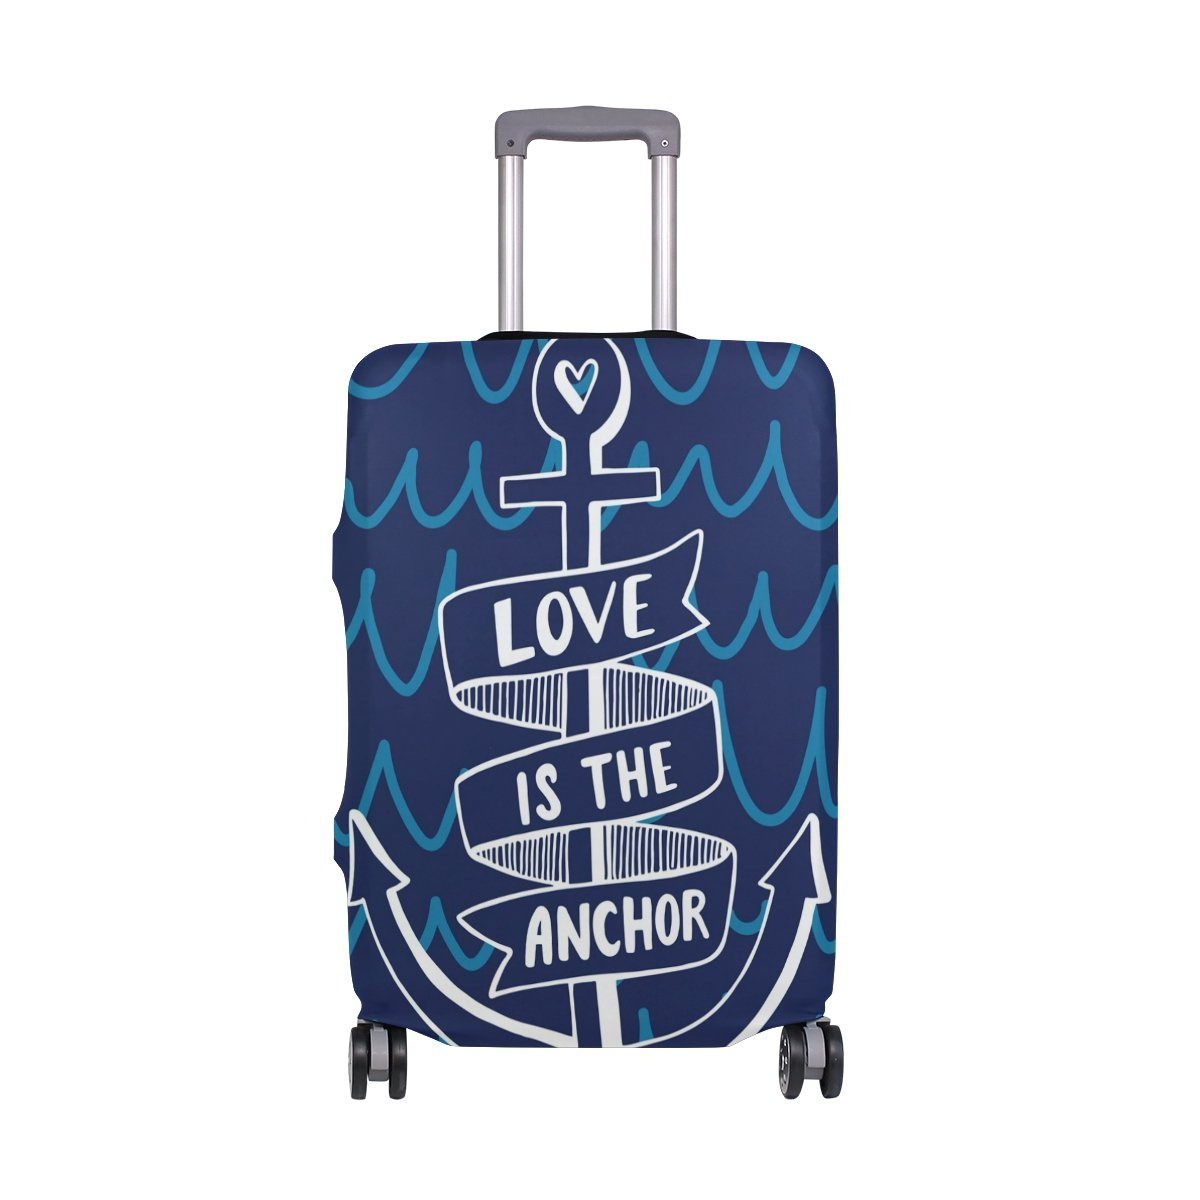 Vintage Love Anchor Ocean Sea Suitcase Luggage Cover Protector for Travel Kids Men Women